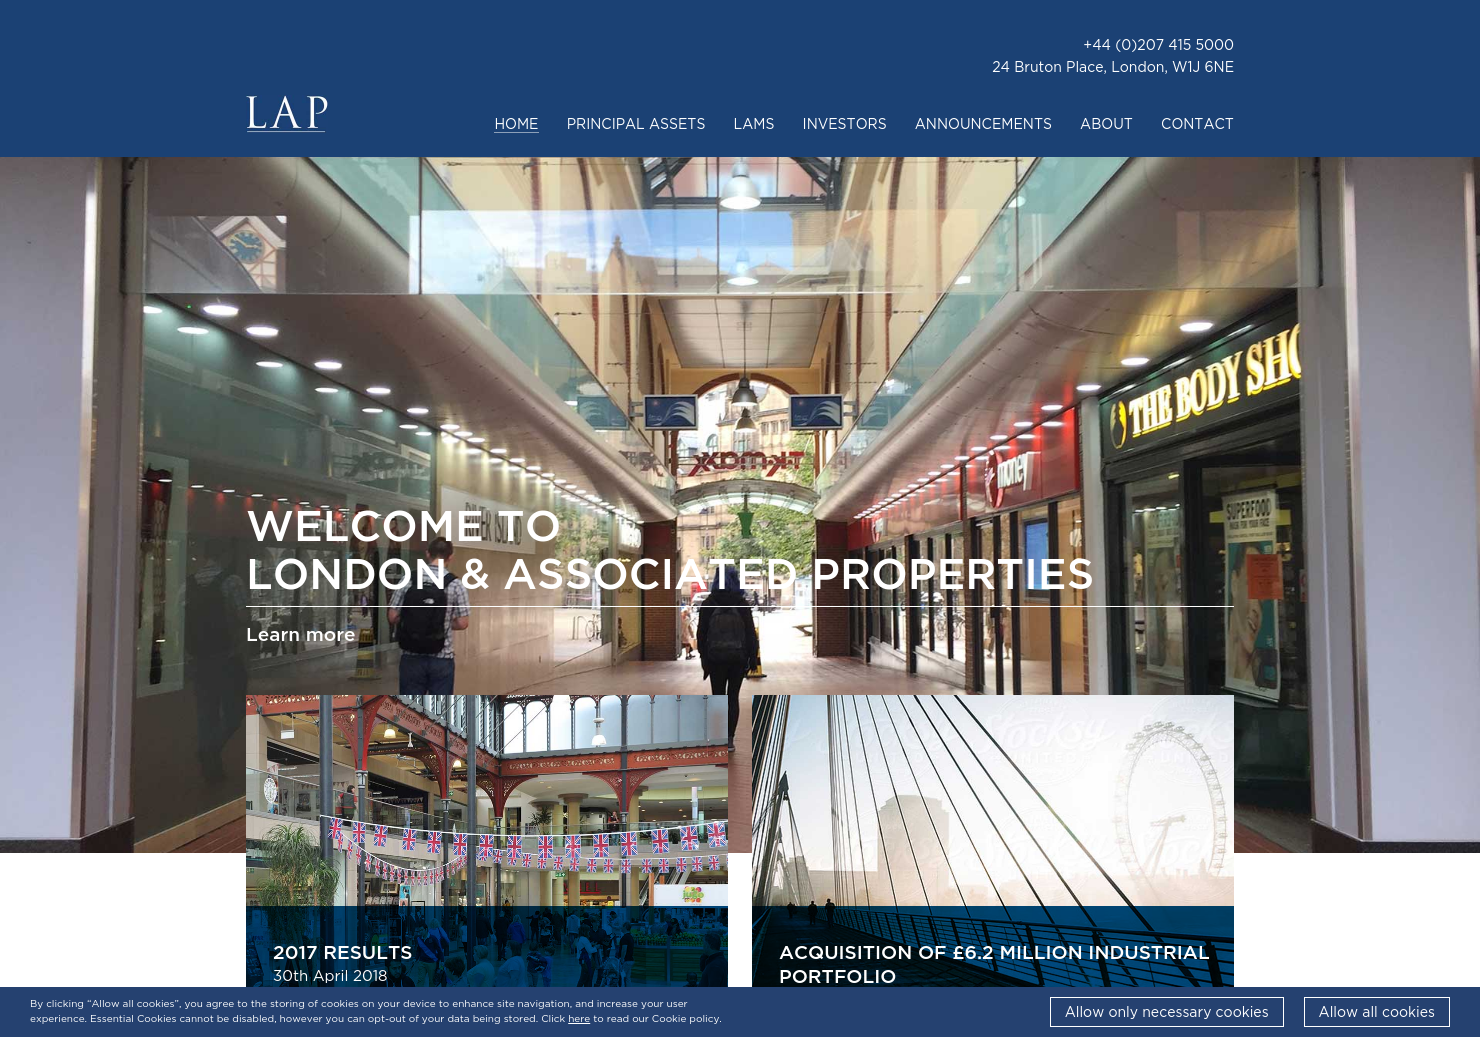 London & Associated Properties Home Page